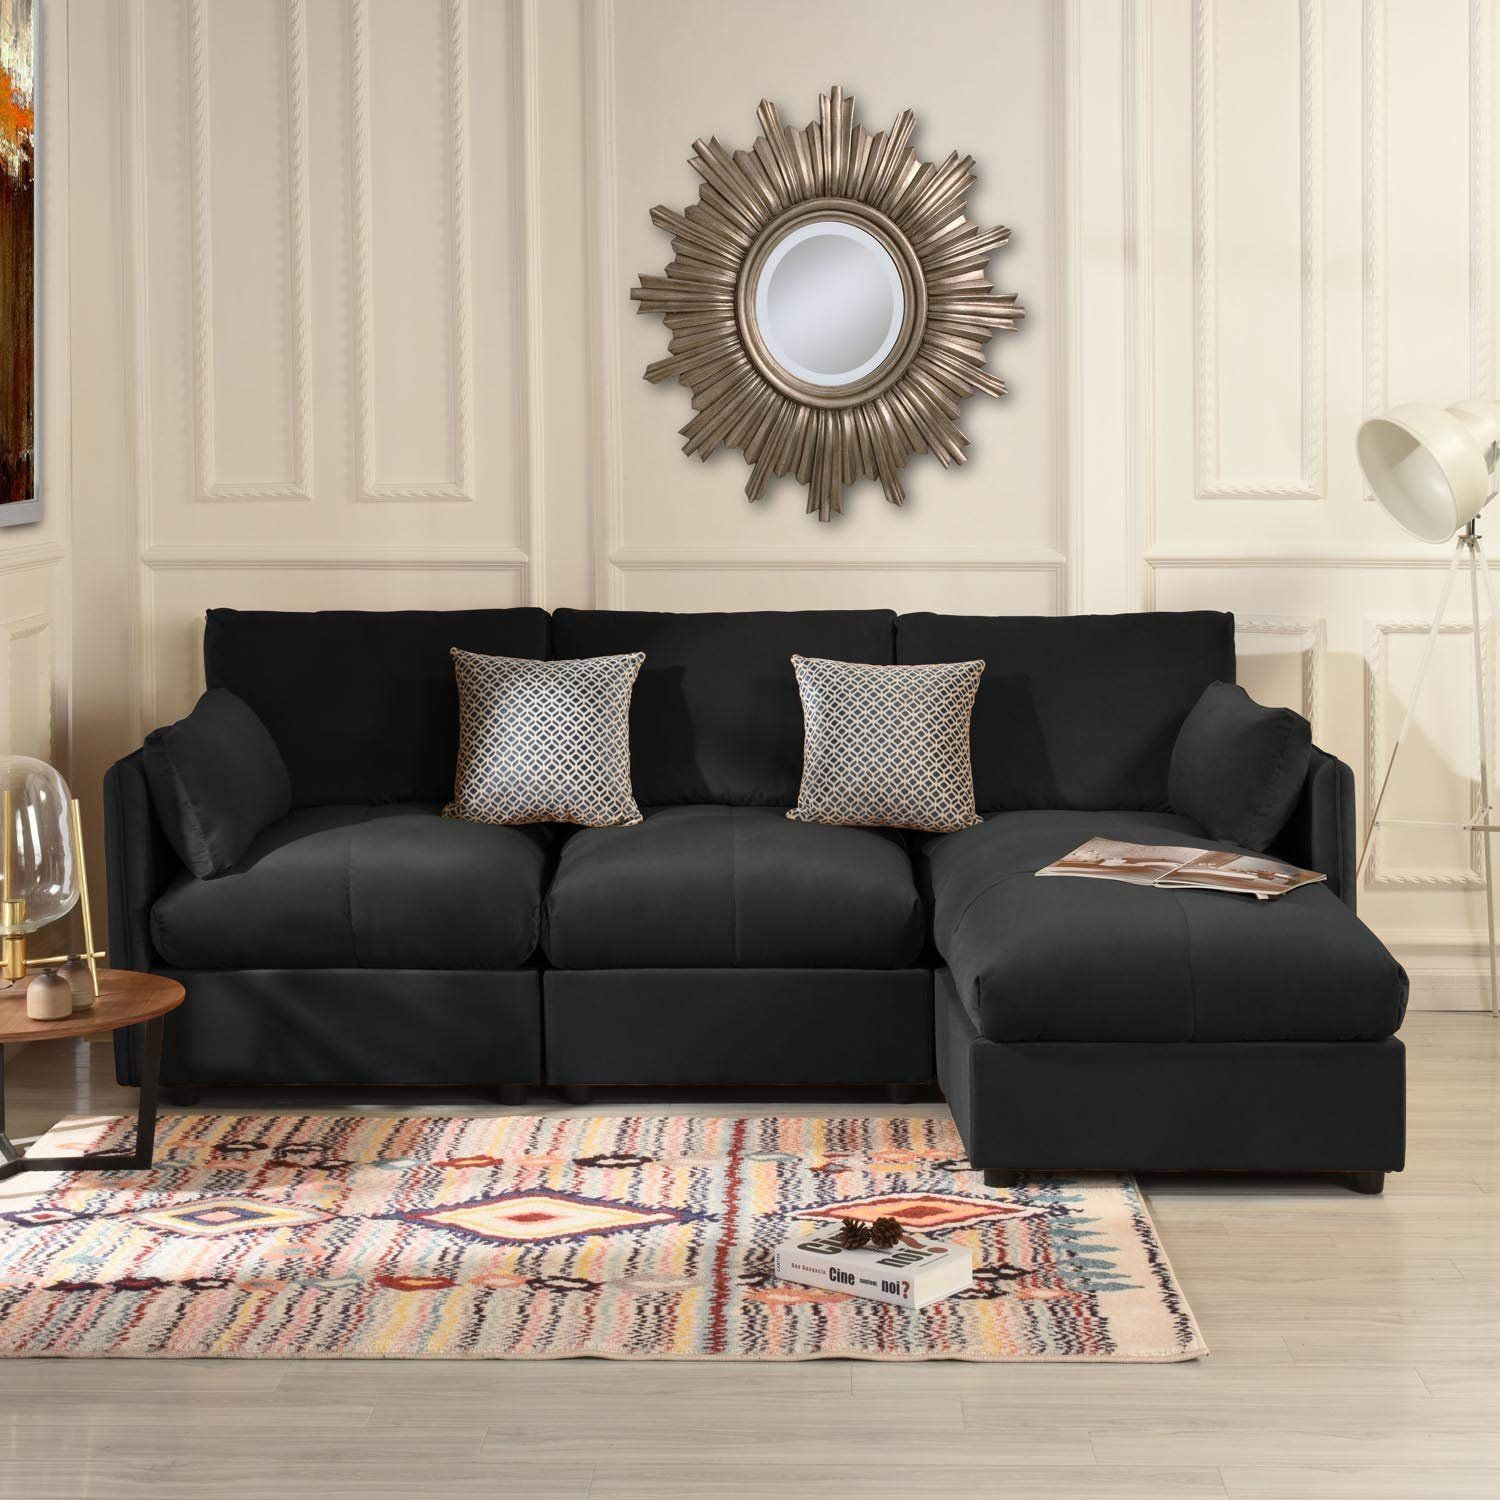 Sofas For Living Room In 2020 Sectional Sofas Living Room Modern Sofa Living Room Contemporary Living Room Furniture